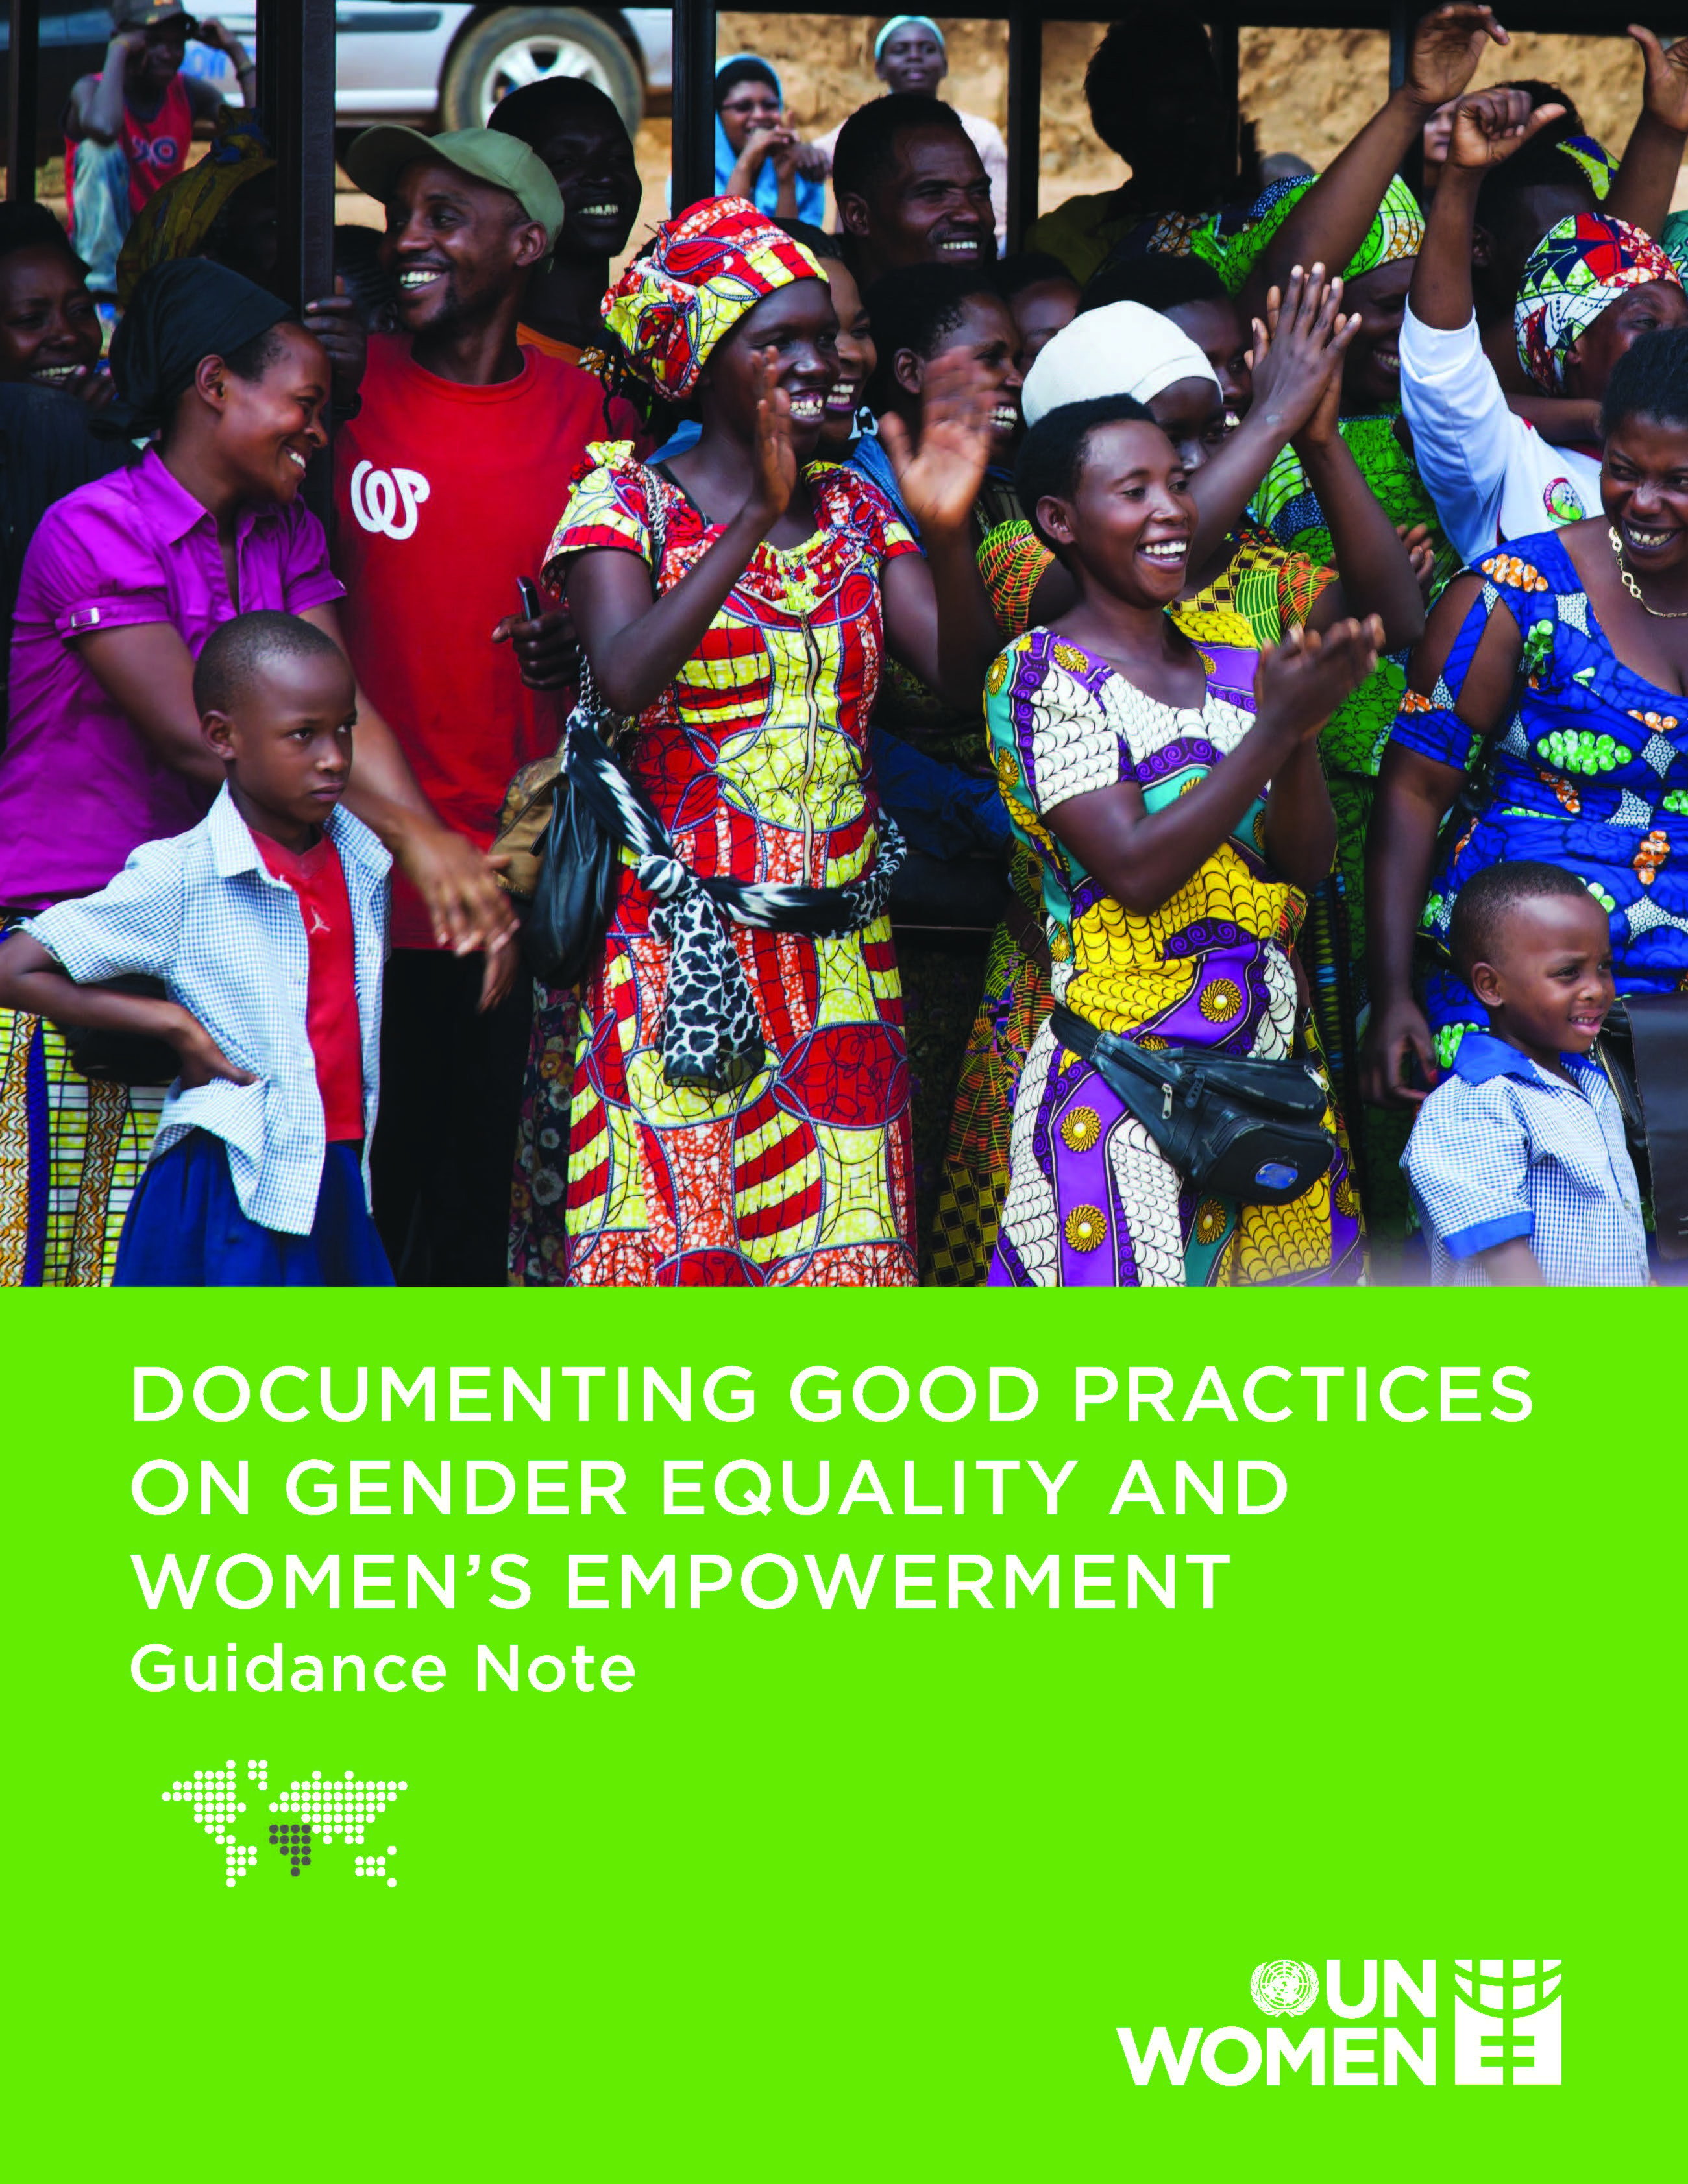 Guidance Note on documenting good practices on Gender Equality and Women's Empowerment